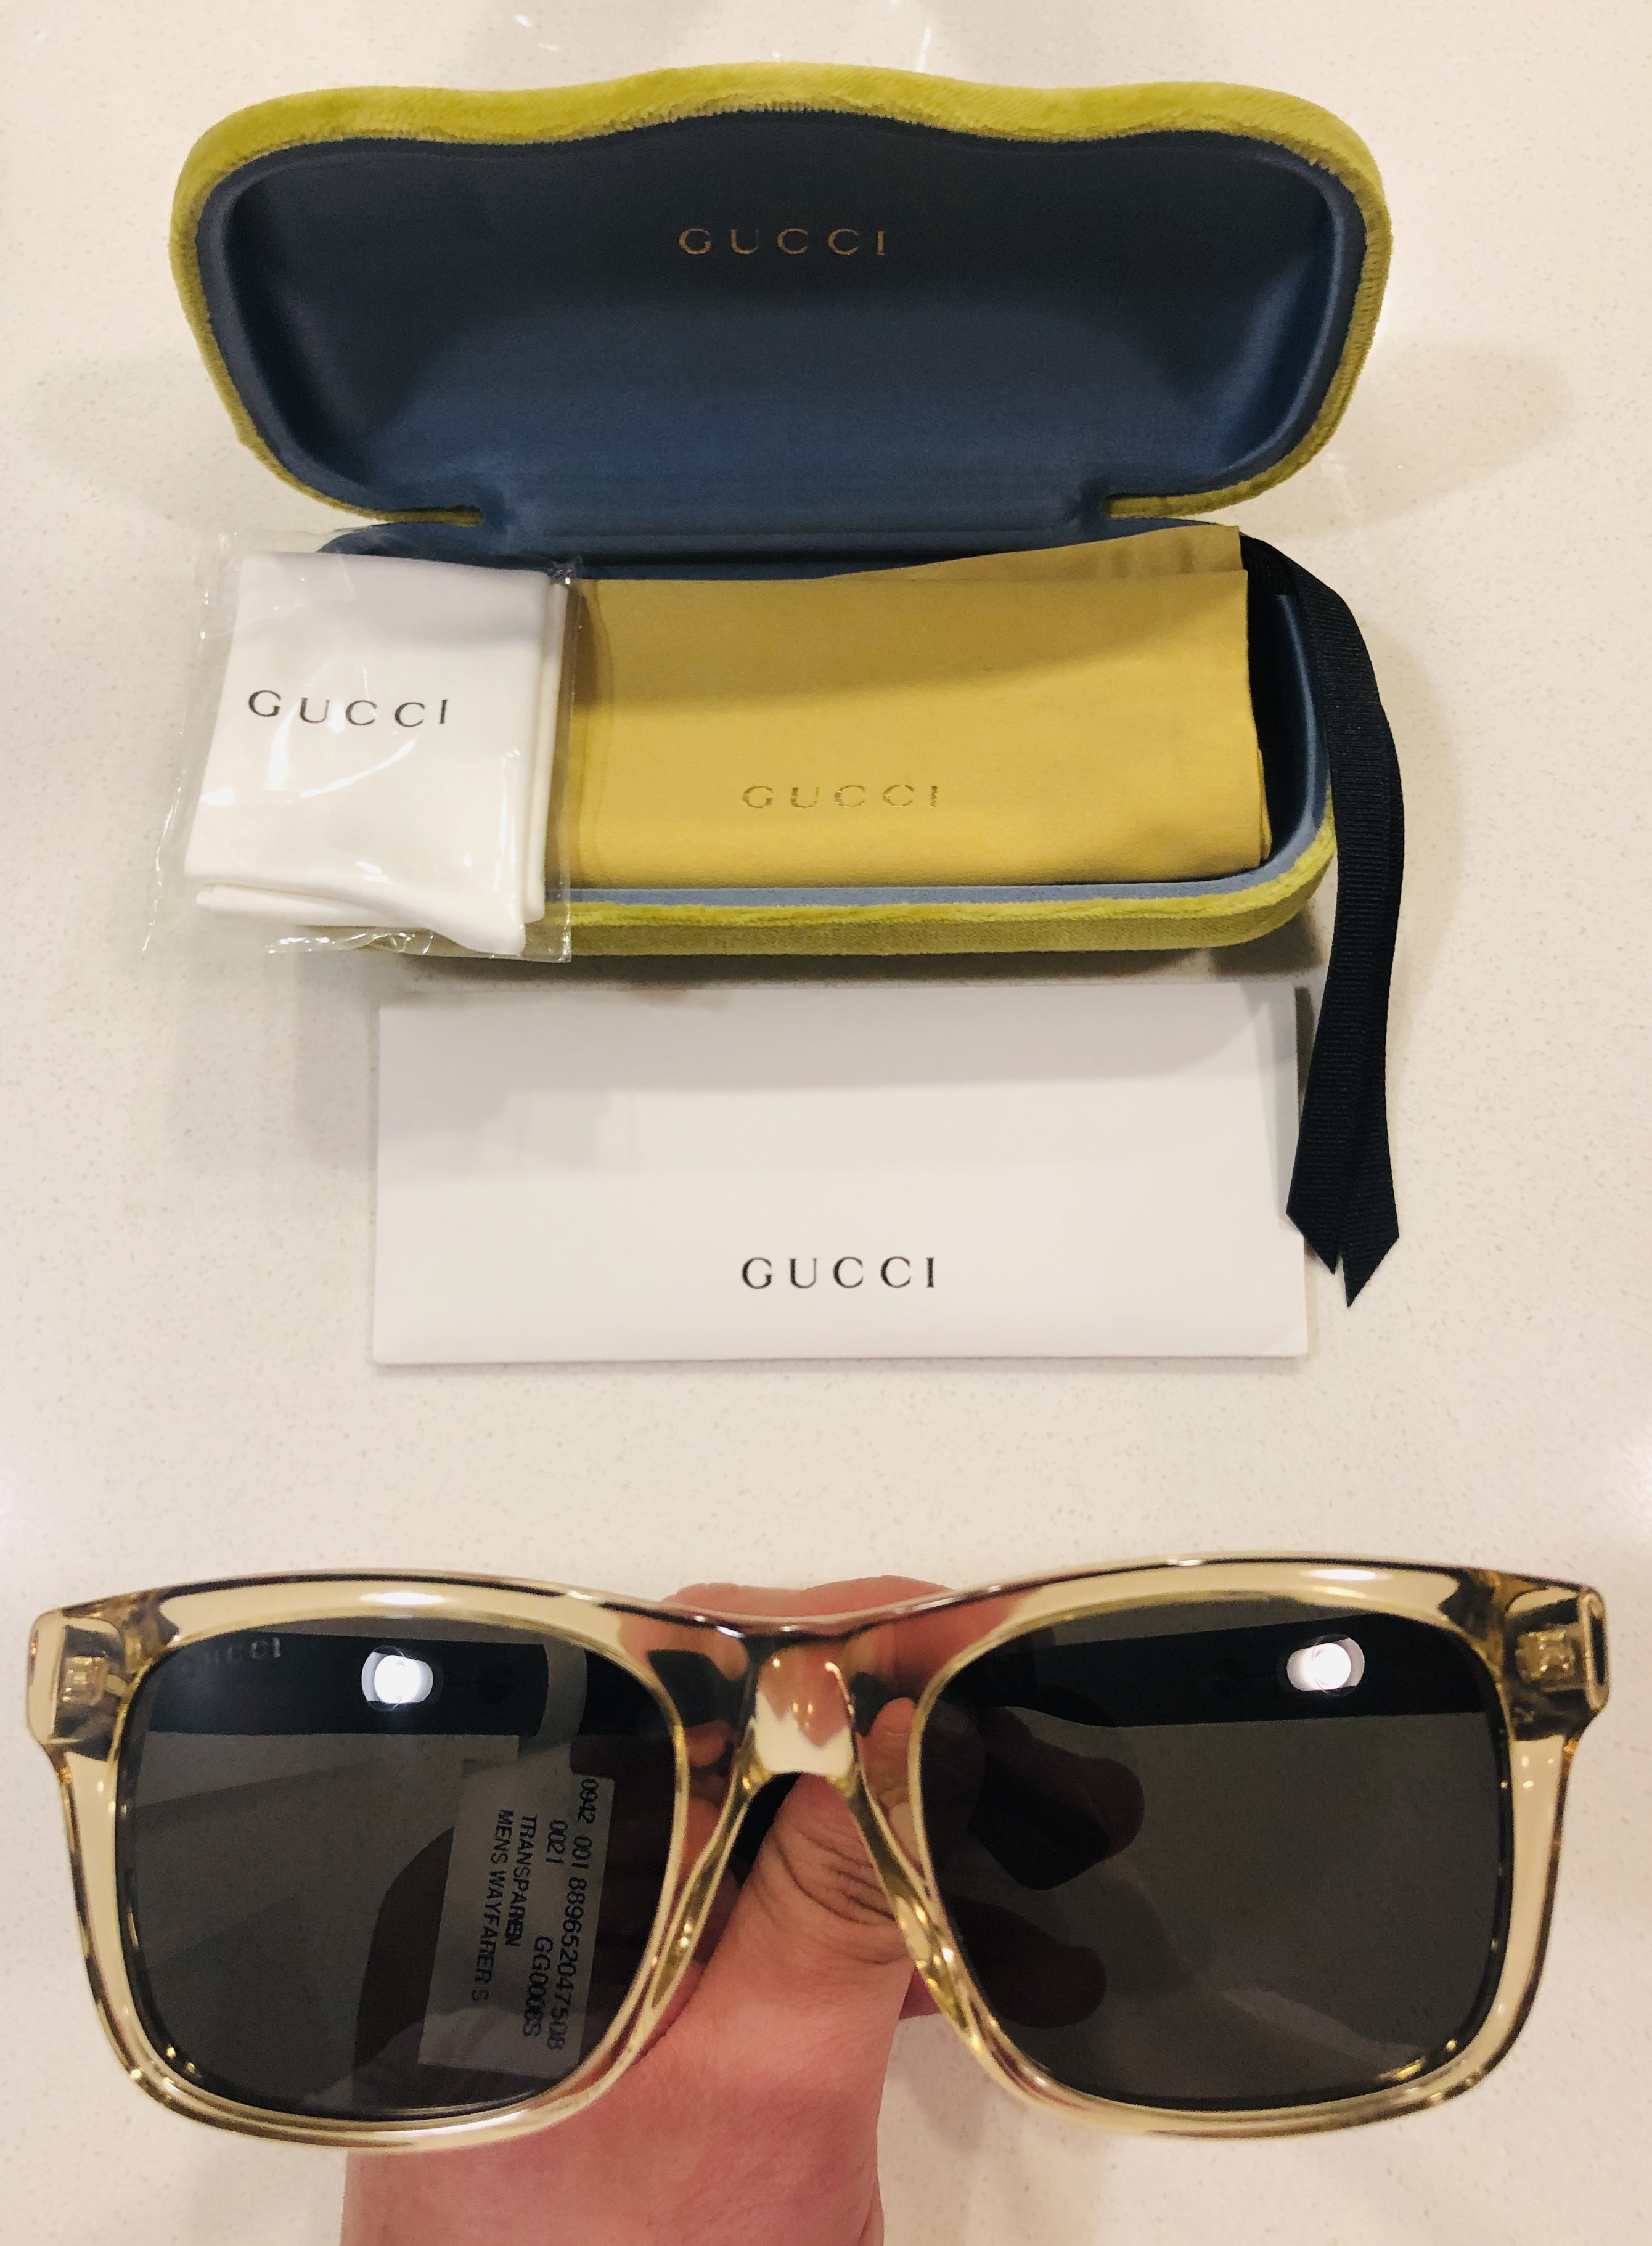 b892d9779bb Gucci New Gucci Sunglasses Gg0008s 005 Transparent Brown Frames ...